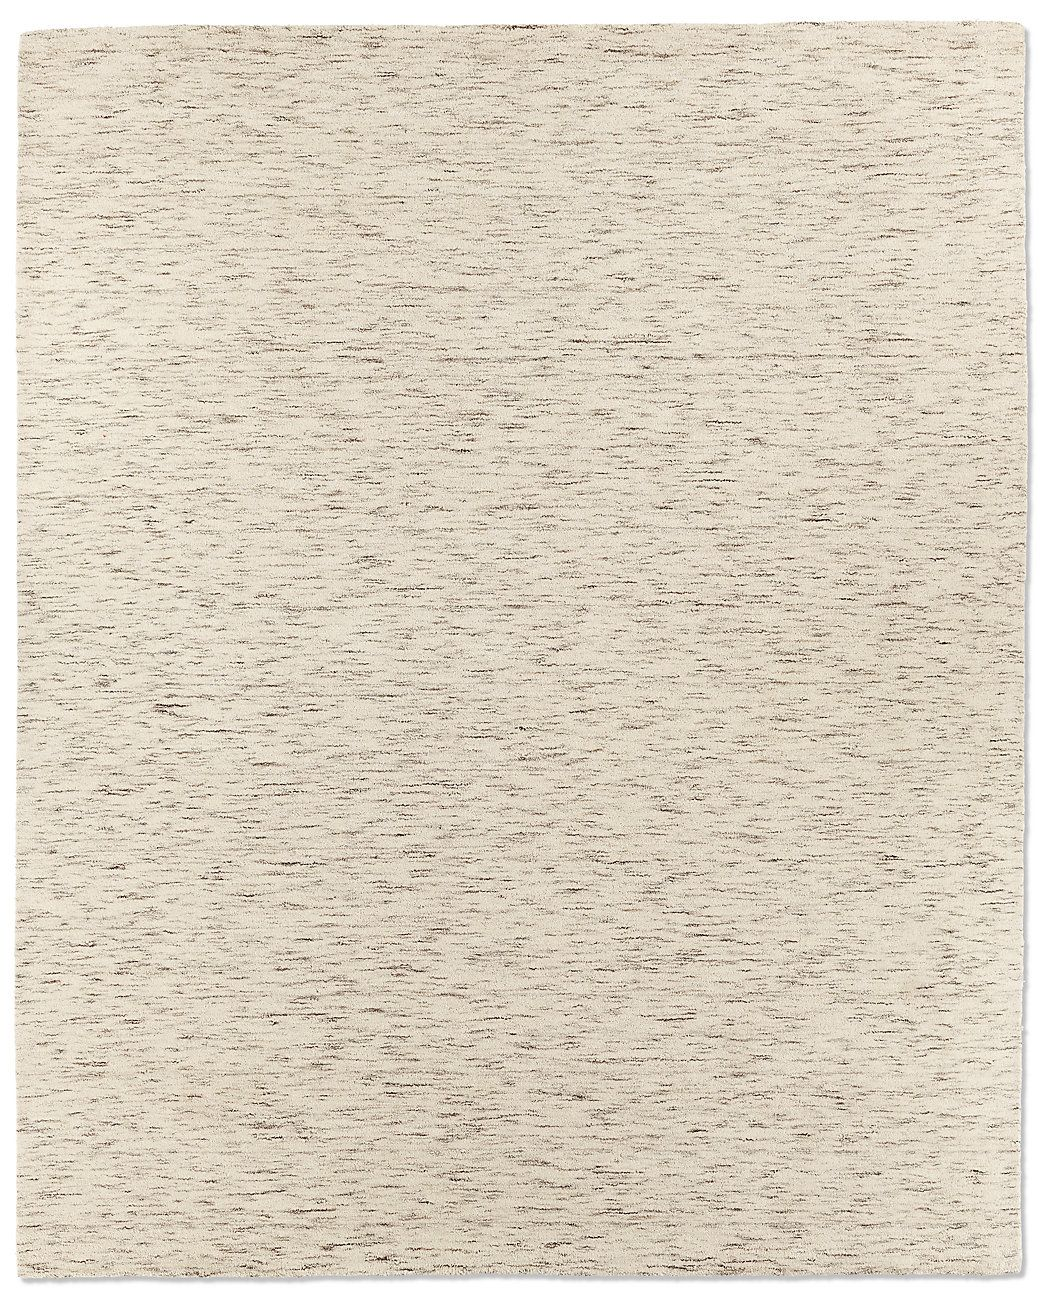 Striated Plush Wool Rug Cream